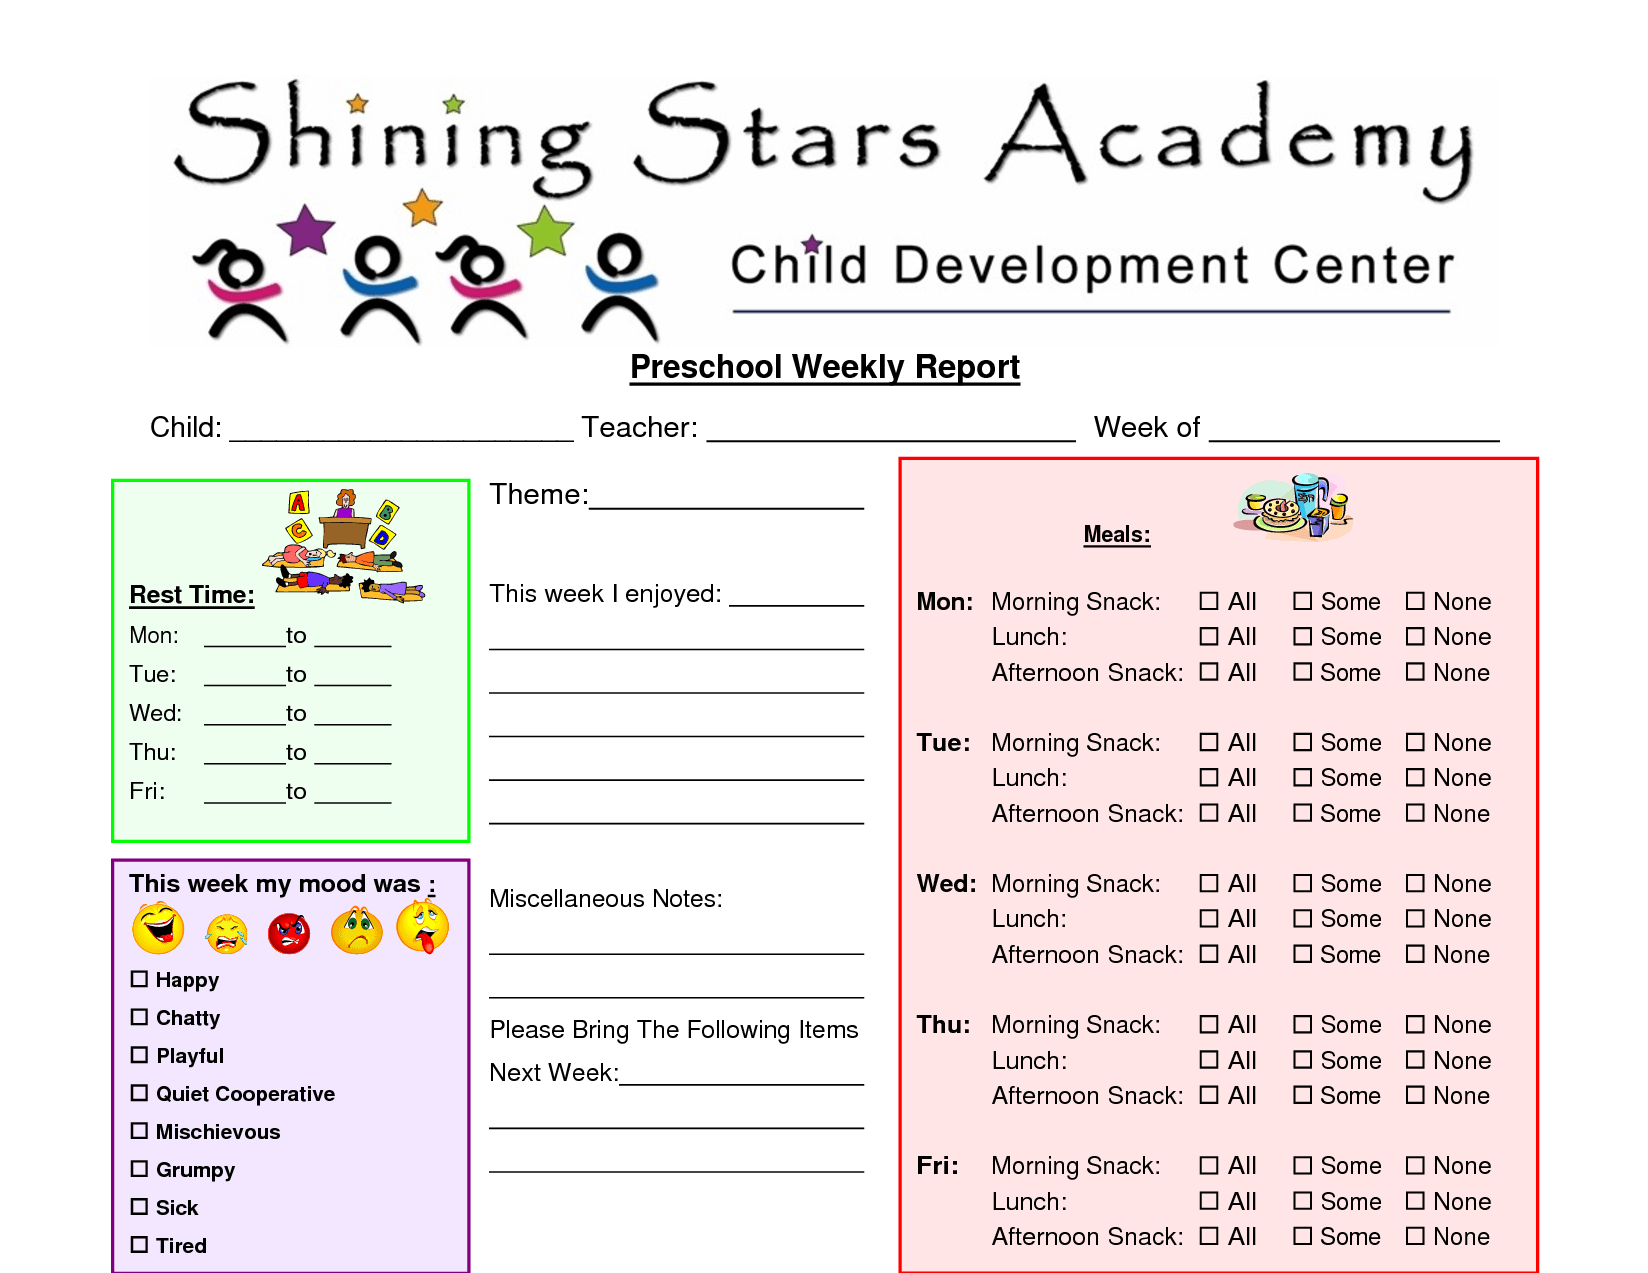 Free Printable Pre School Prgress Reports